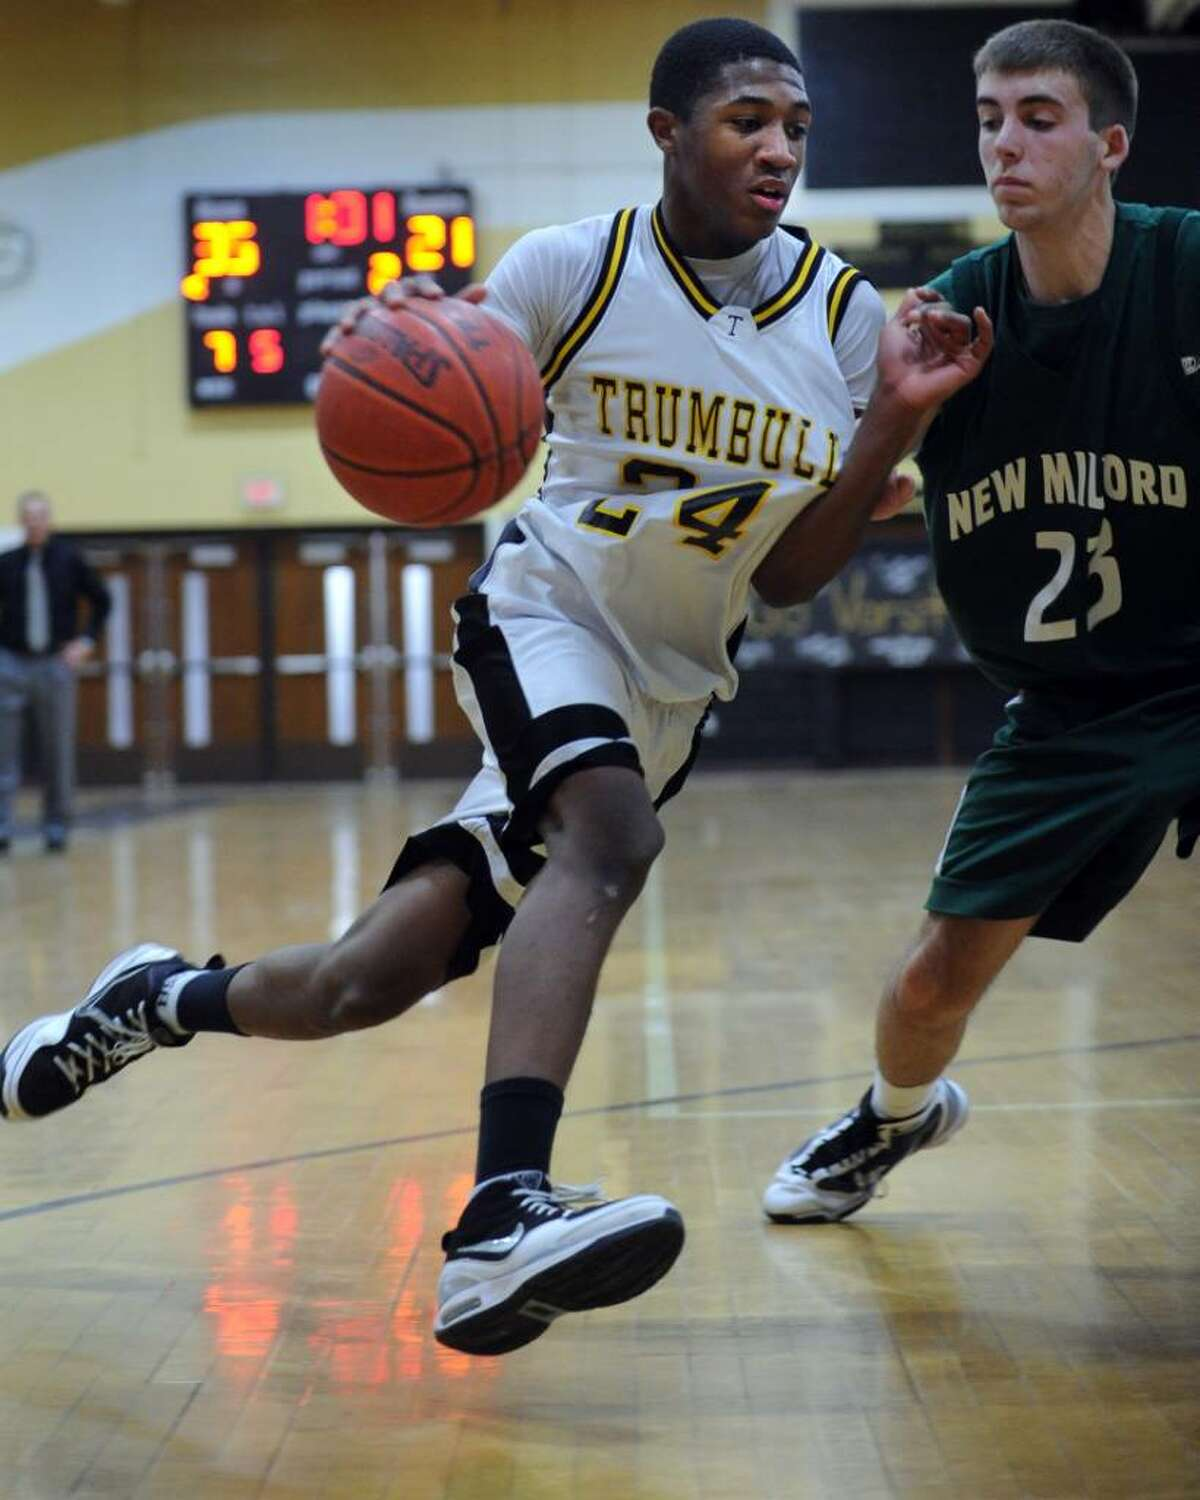 Trumbull's Julian Sanders drives to the net during the Class LL first round state tournament game against New Milford Tuesday Mar. 9, 2010 at Trumbull High School.